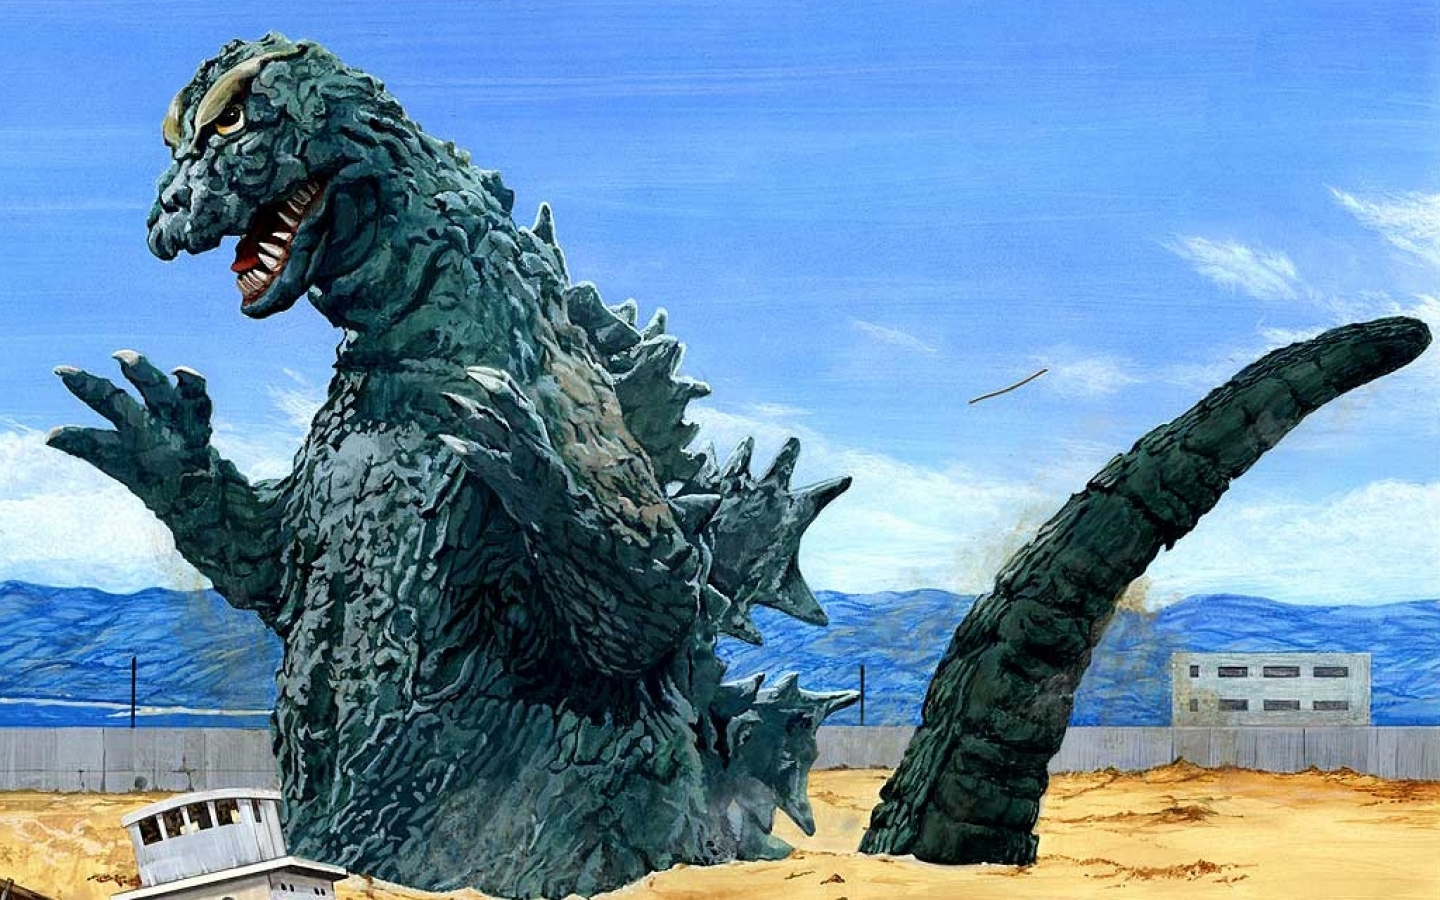 New List Up at Topless Robot: 10 Greatest Giant Movie Monsters of All Time